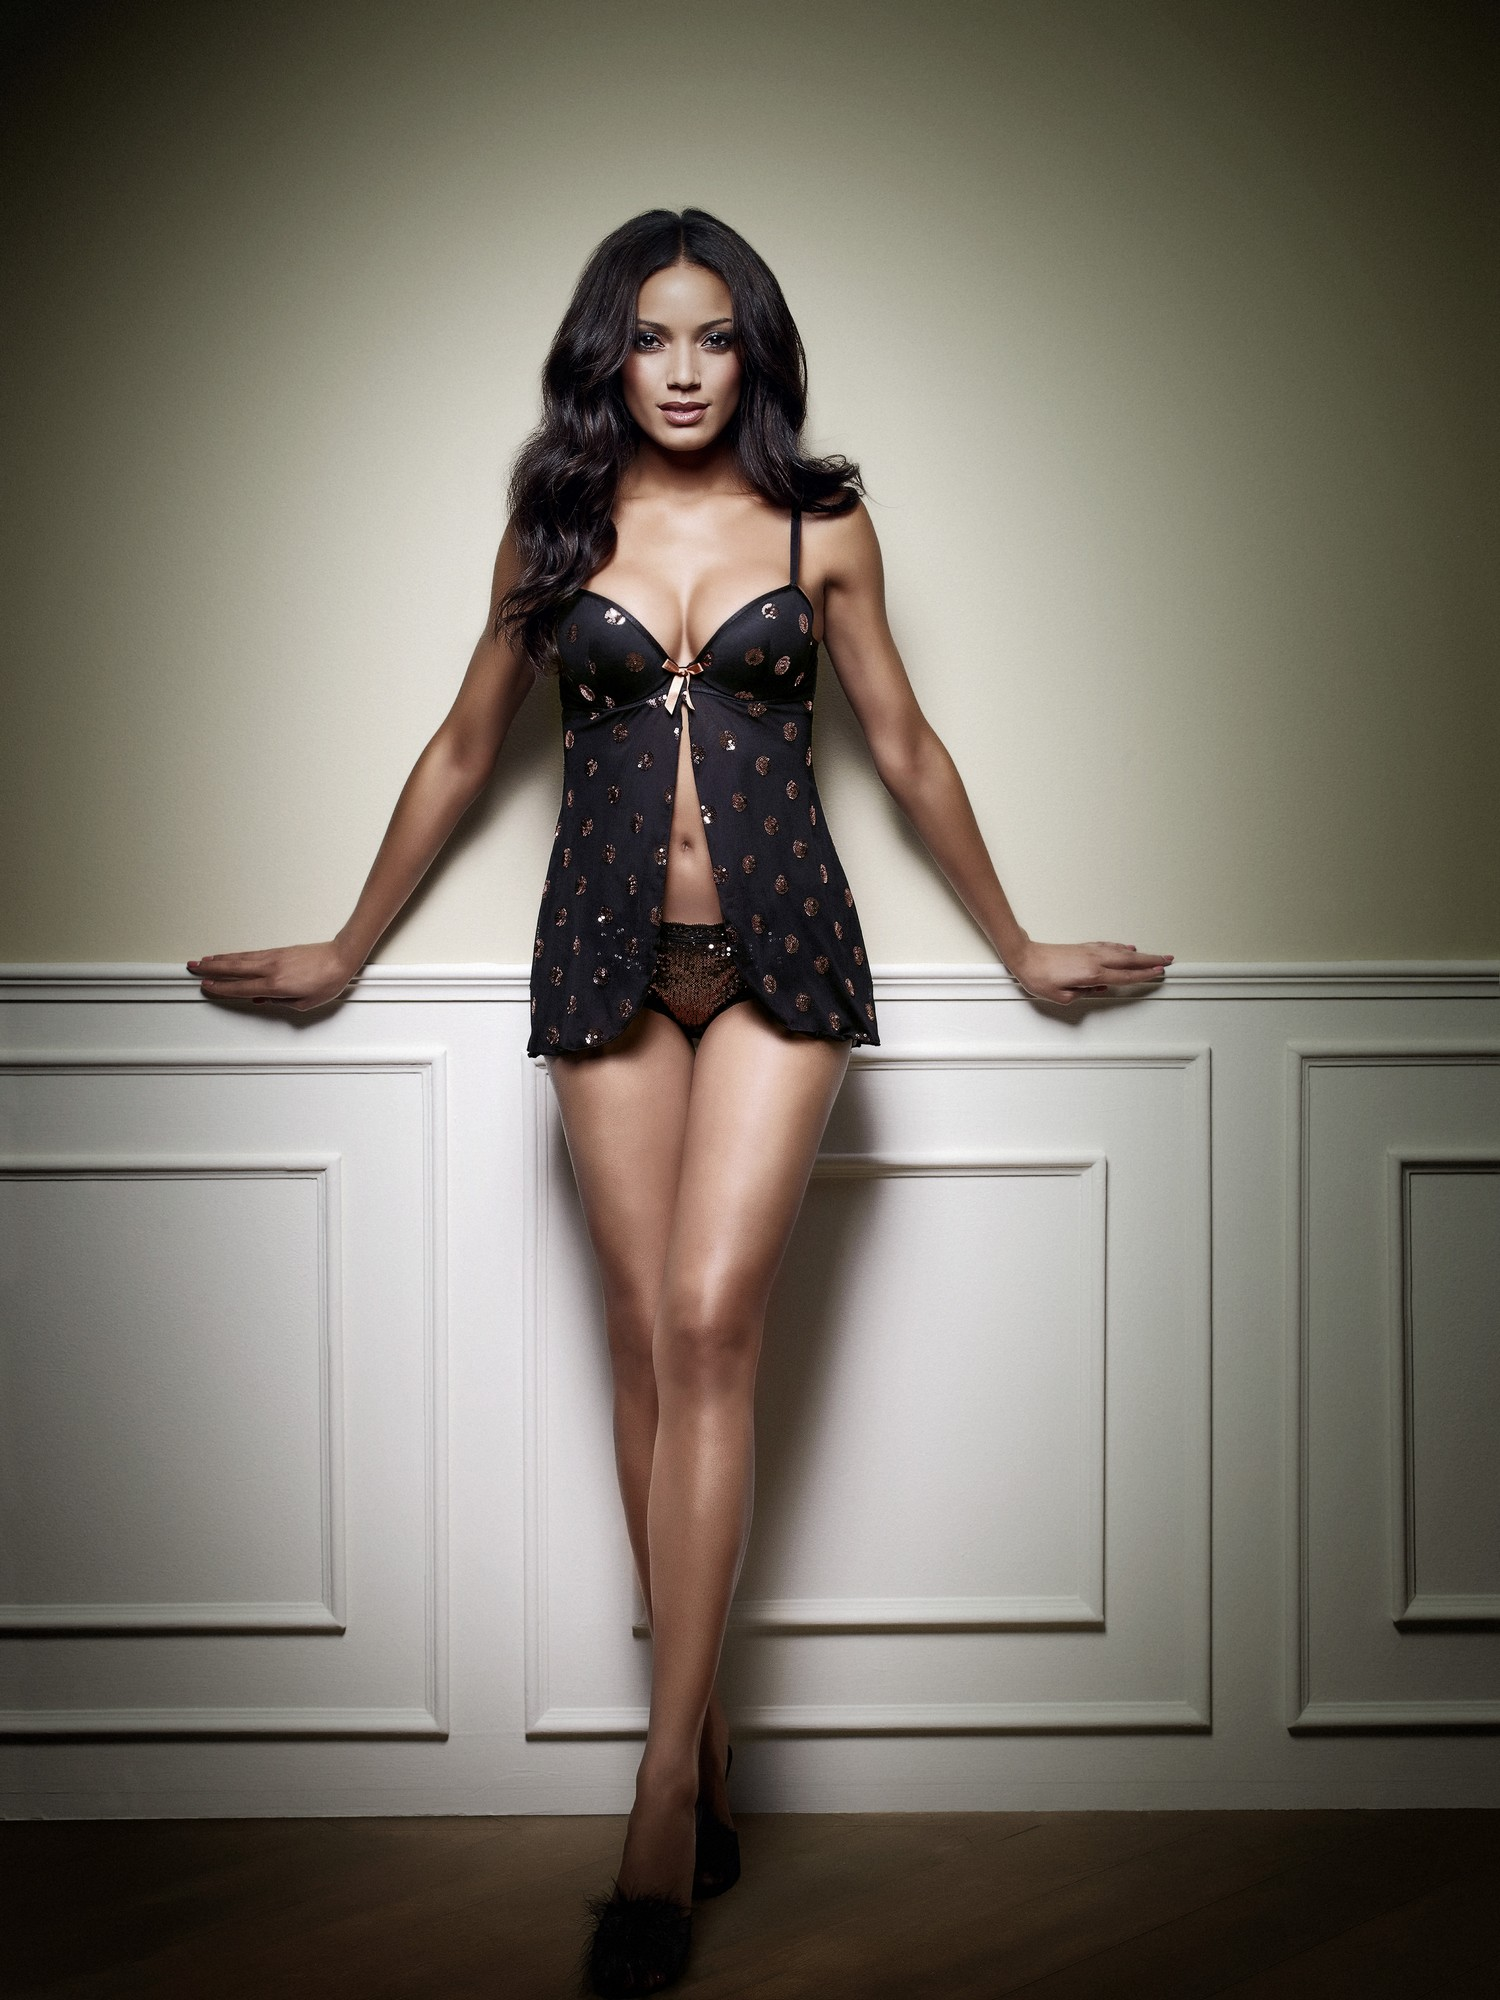 Selita-Ebanks-manor-lingerie-2